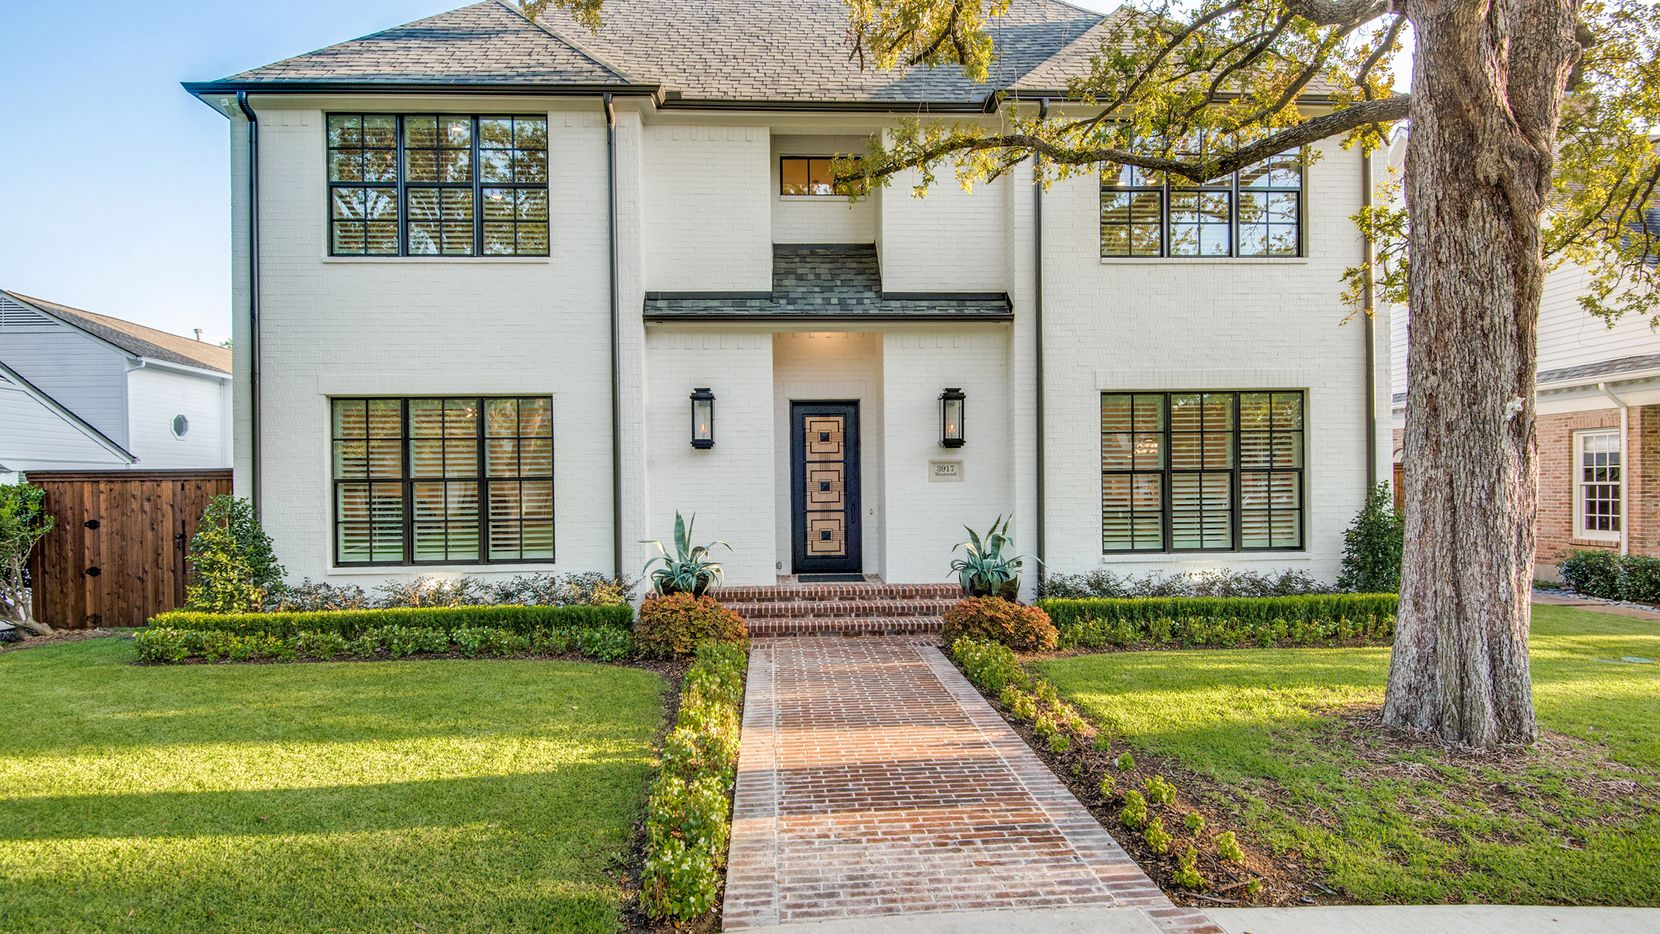 The new home at 3917 Wentwood Drive in University Park's Fairway neighborhood features six bedrooms.